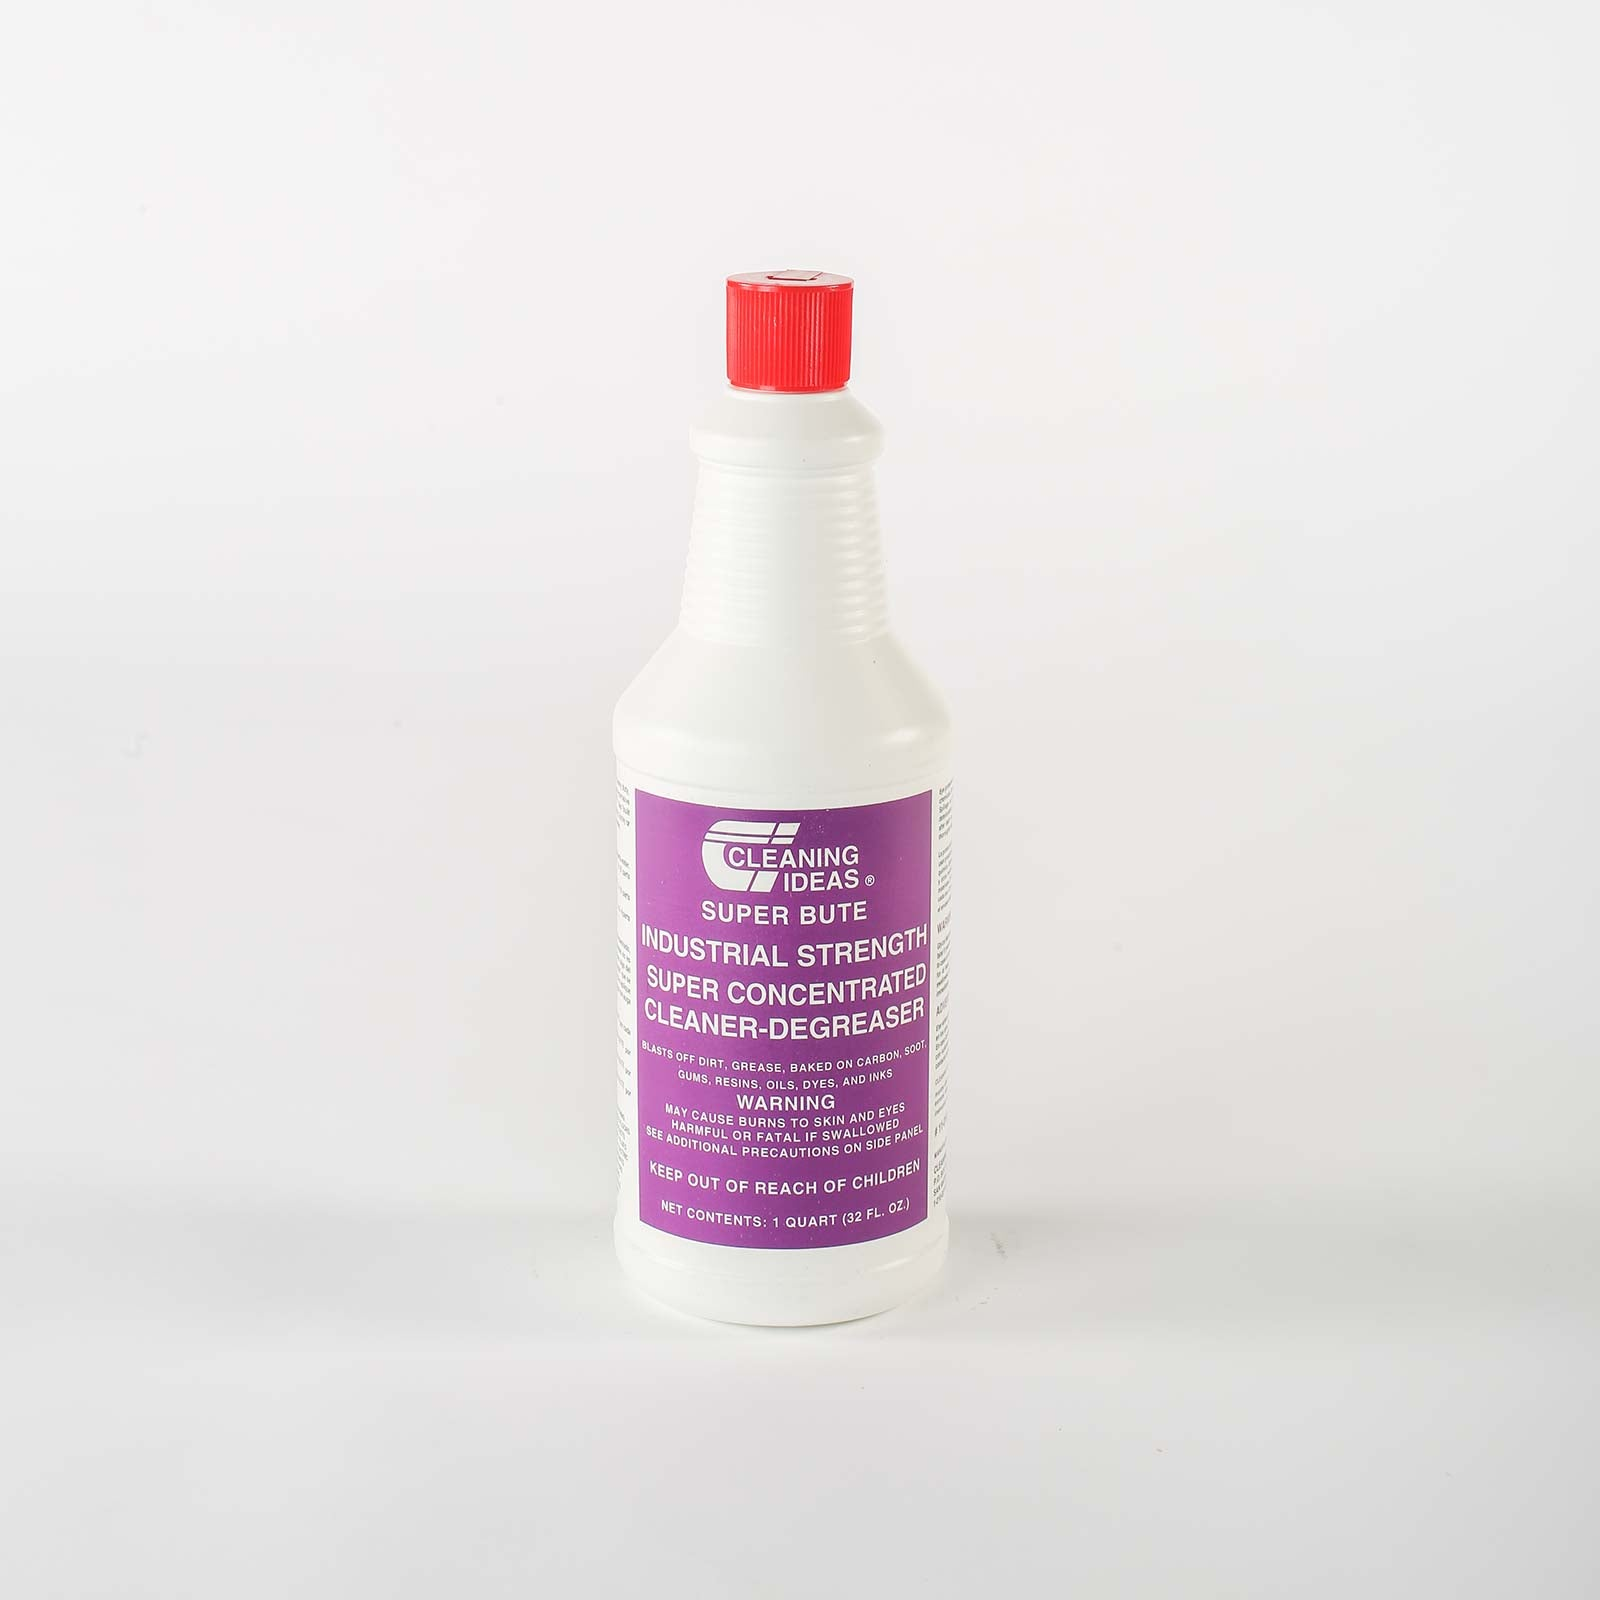 Super Bute Cleaner Degreaser